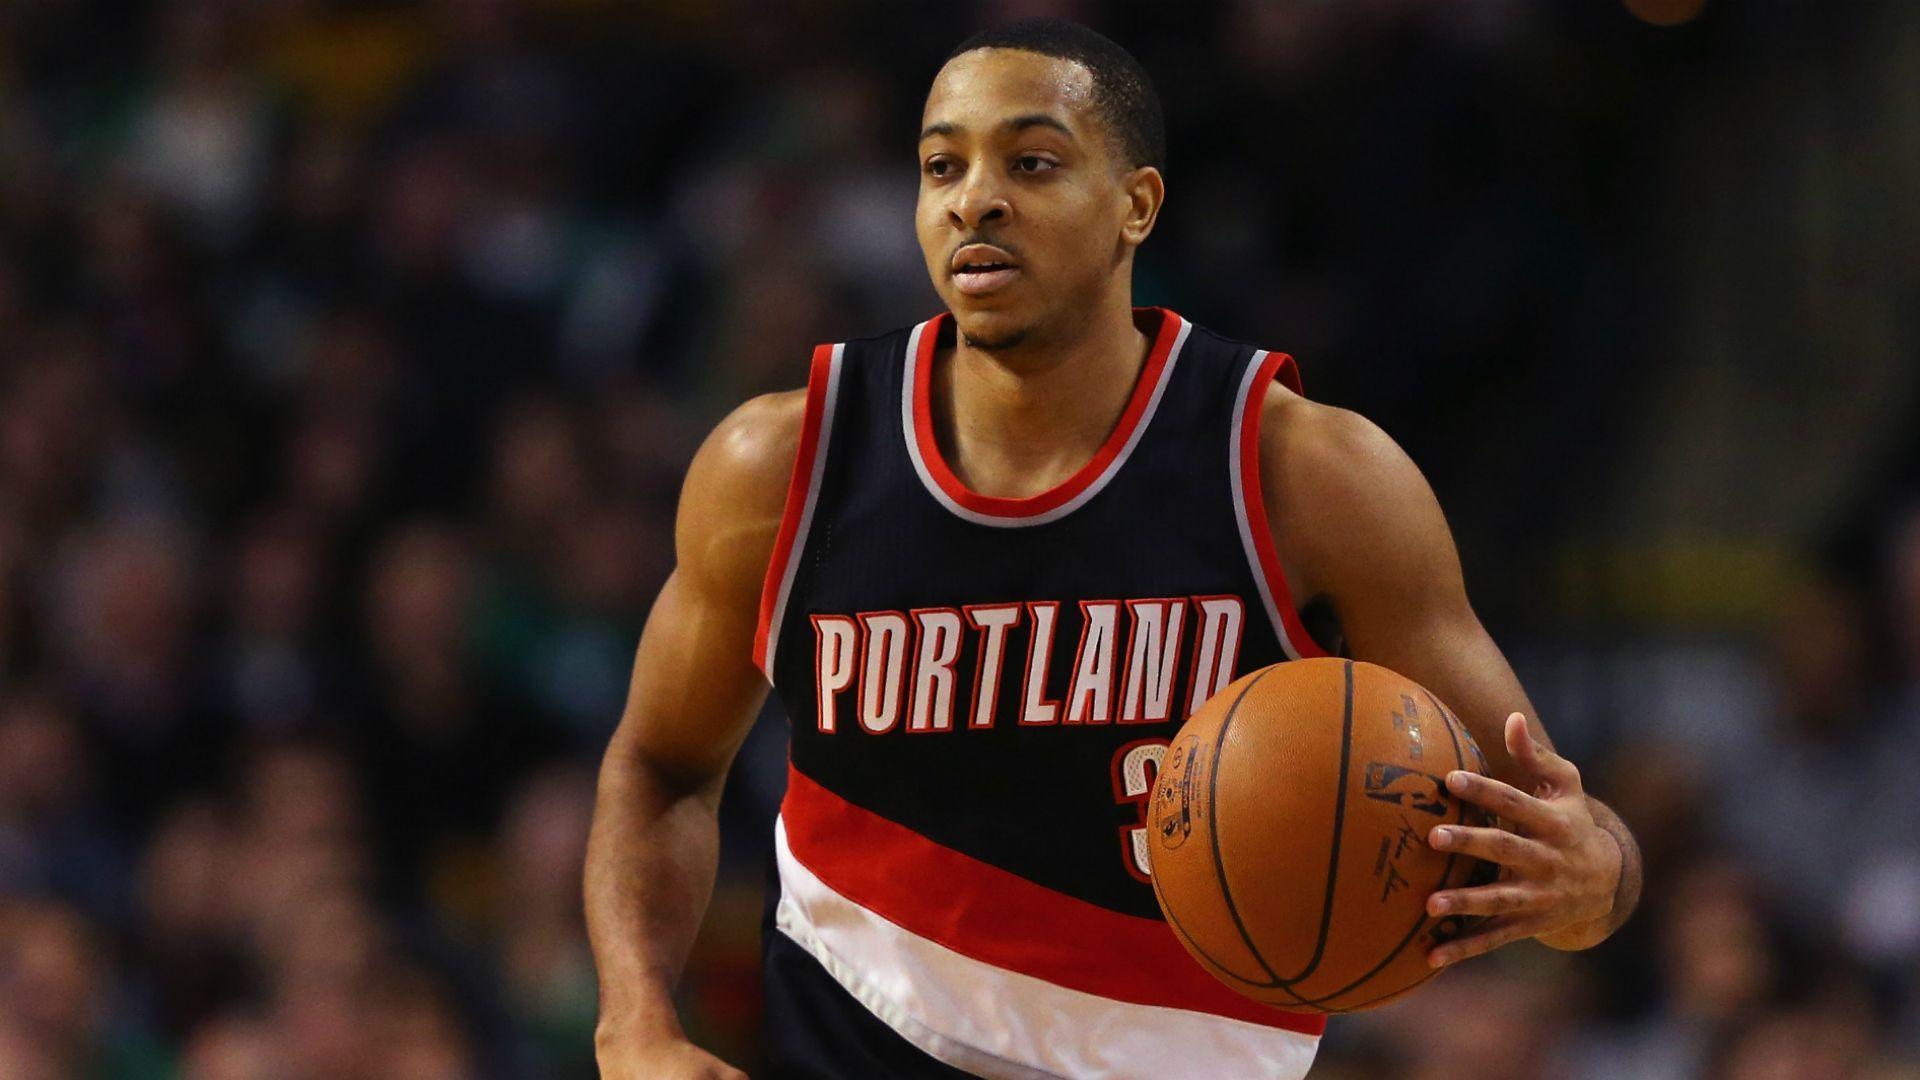 Blazers' C.J. McCollum suspended for leaving bench during